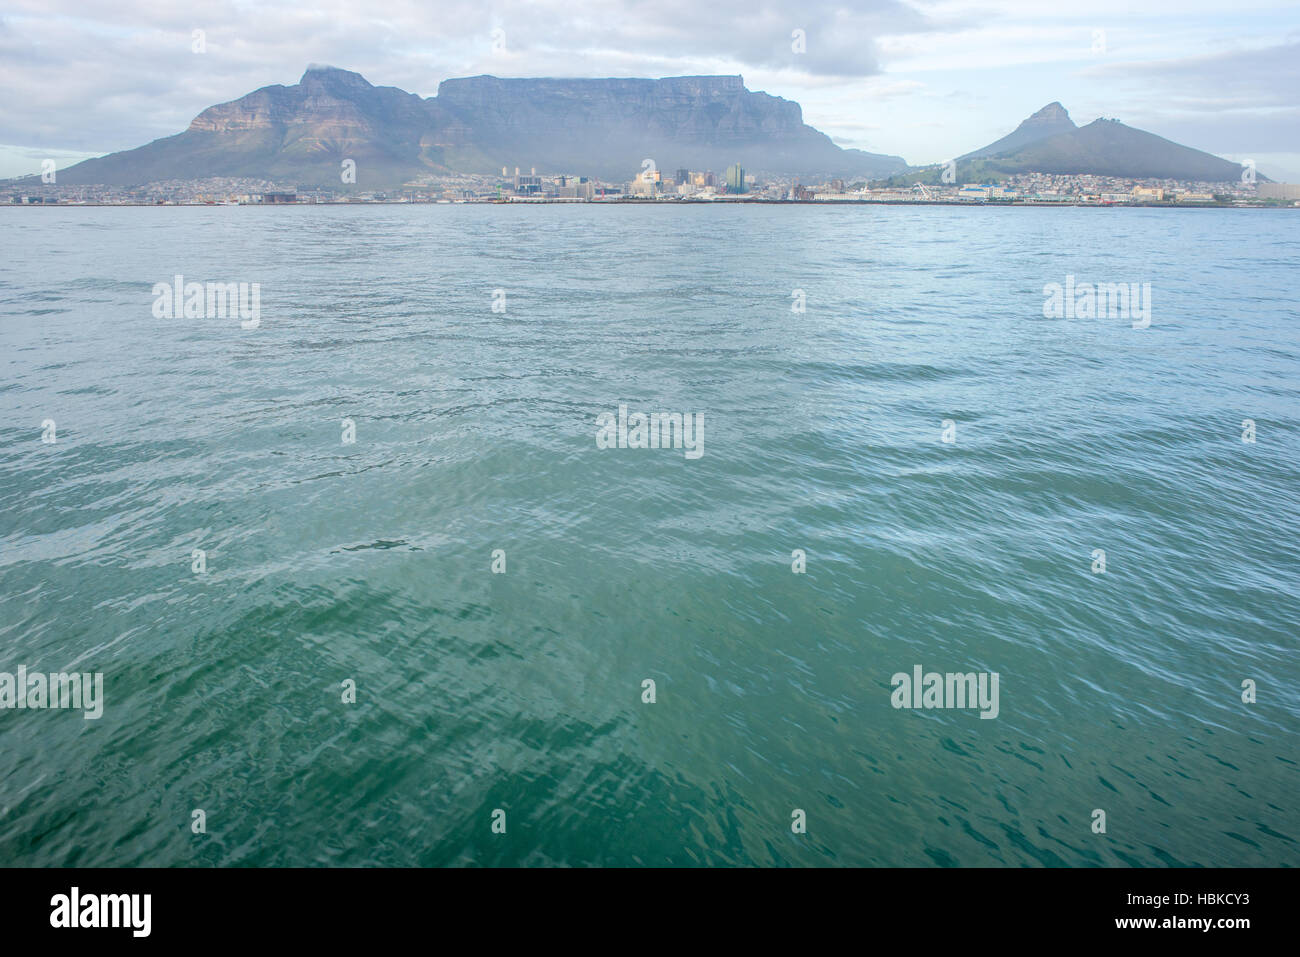 Table Mountain from the Ocean - Stock Image